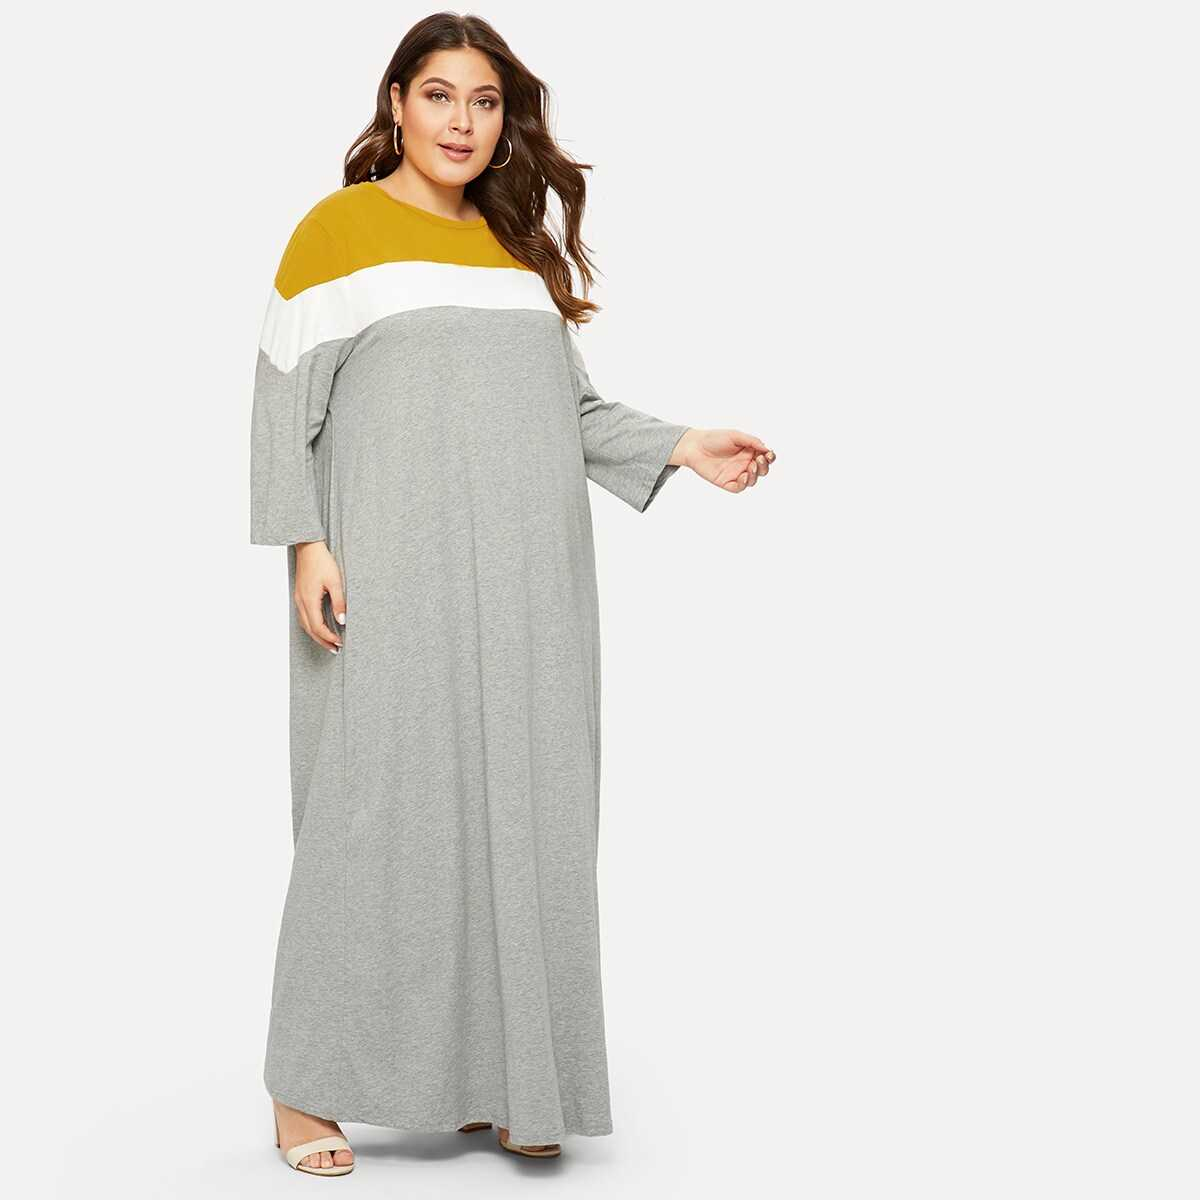 Plus Cut-and-sew Heather Knit Maxi Dress - Shein - GOOFASH